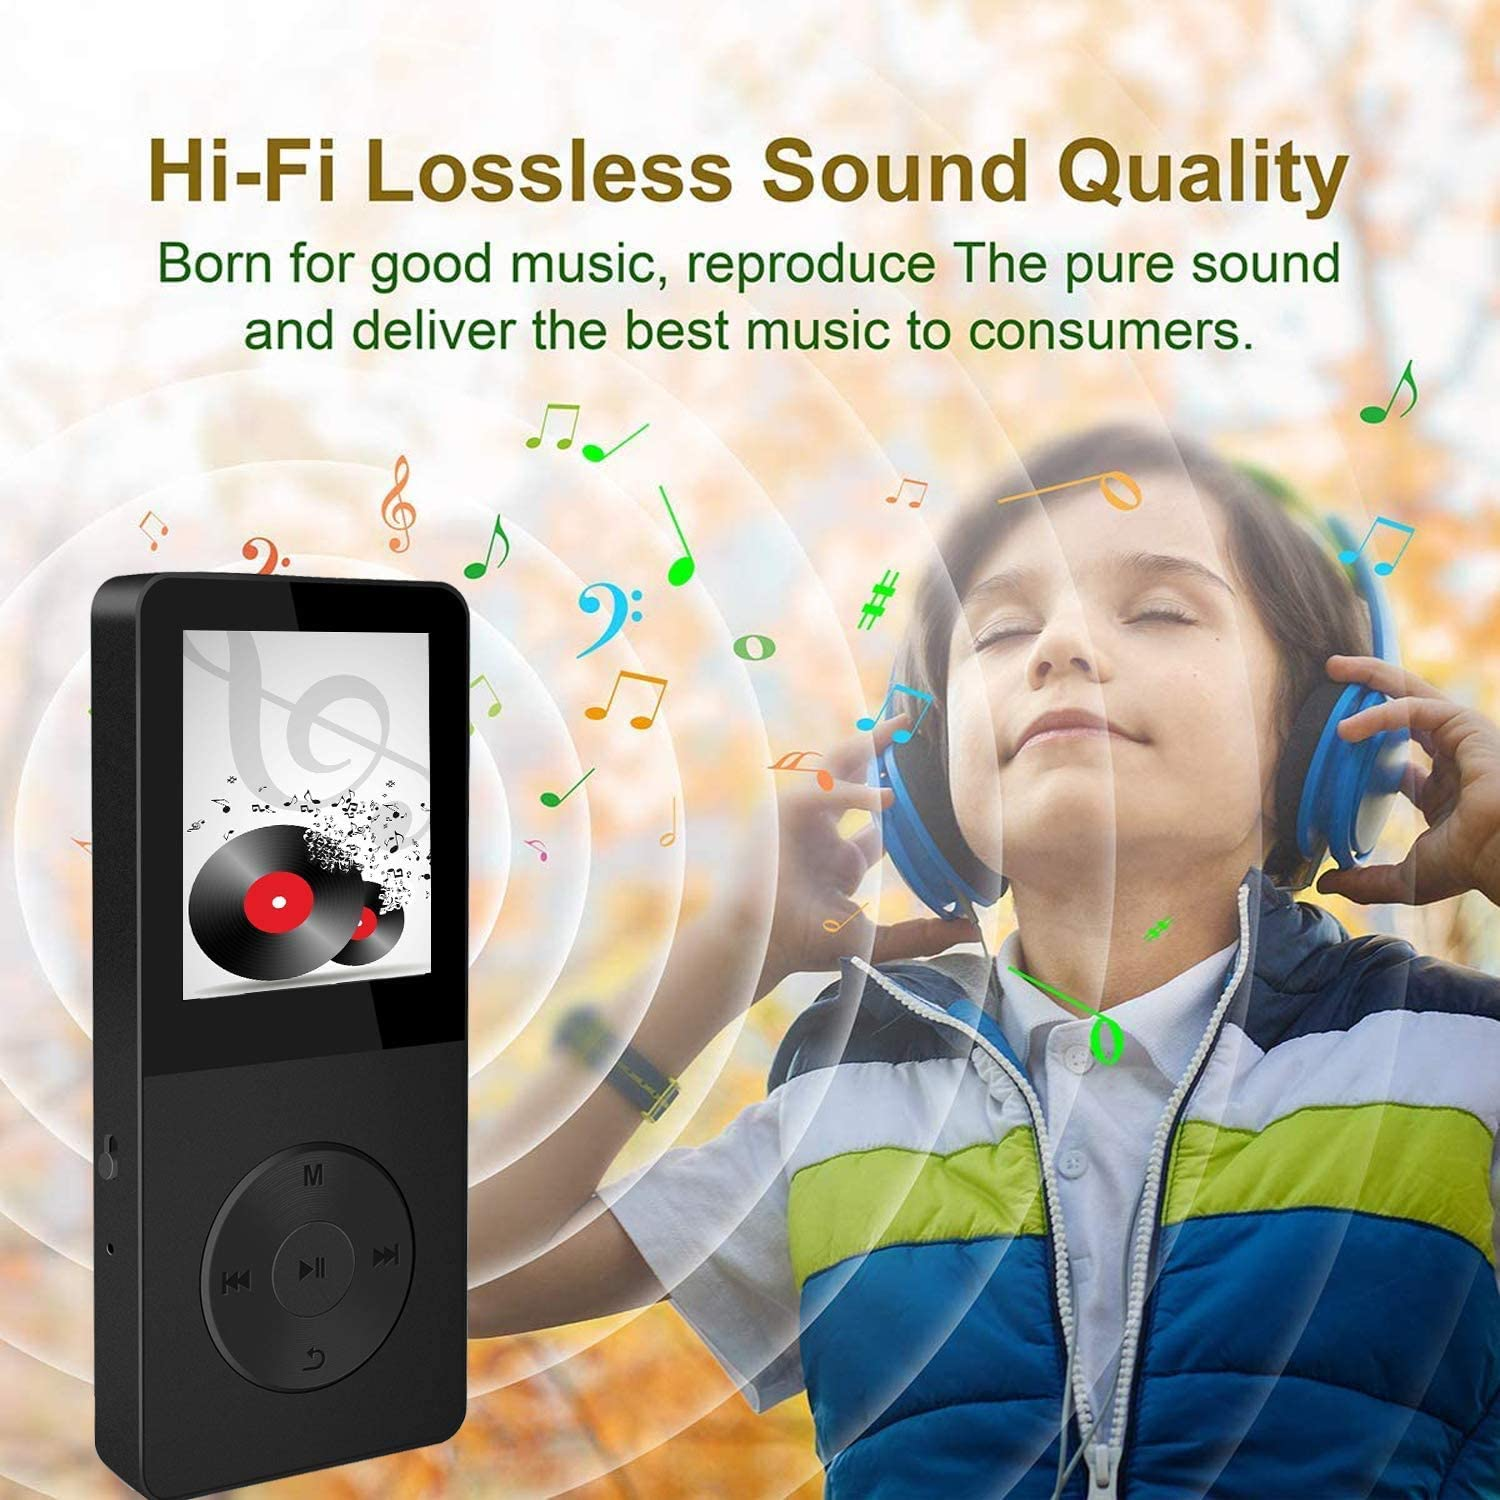 with FM Radio Hotechs Hi-Fi Sound Recording Function Build-in Speaker Expandable Up to 64GB with Noise Isolation Wired Earbuds Mp3 Player